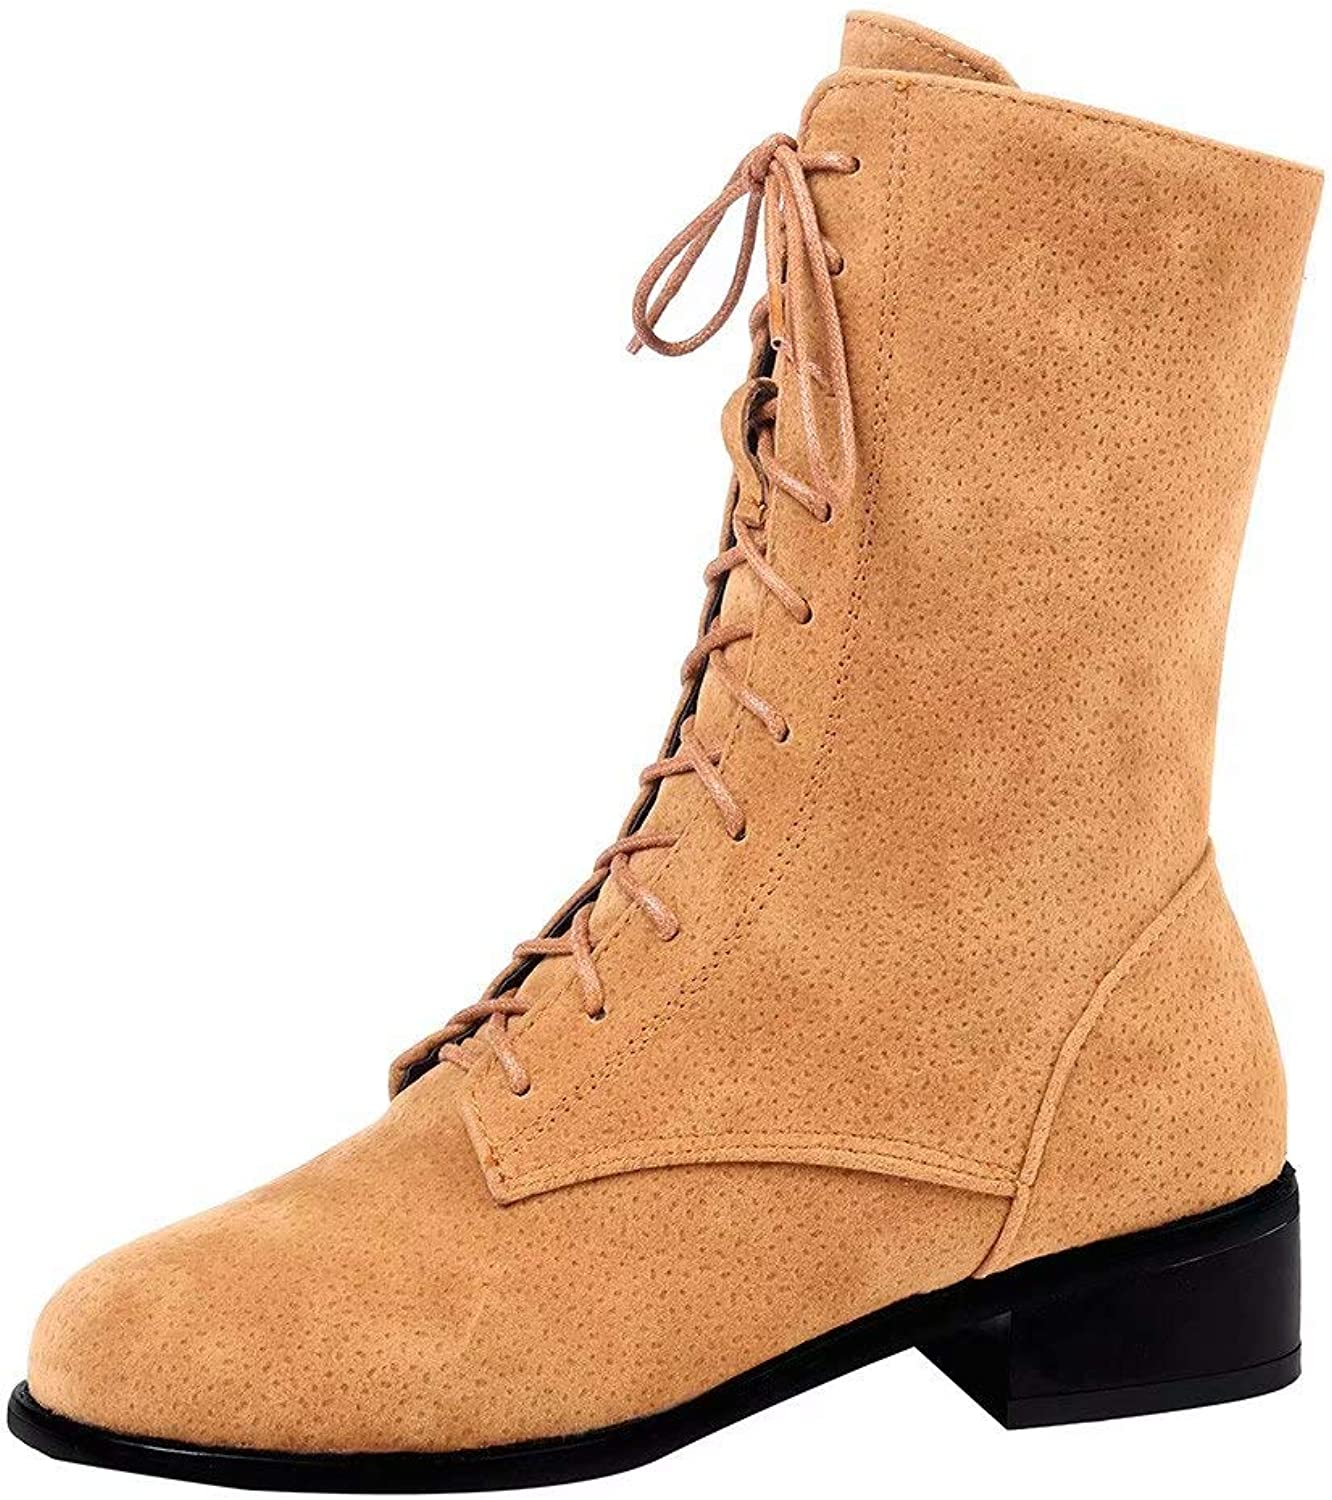 Fashion Ladies Low Heel Straps Round Head Thick with A Tube in The Warm Martin Boots